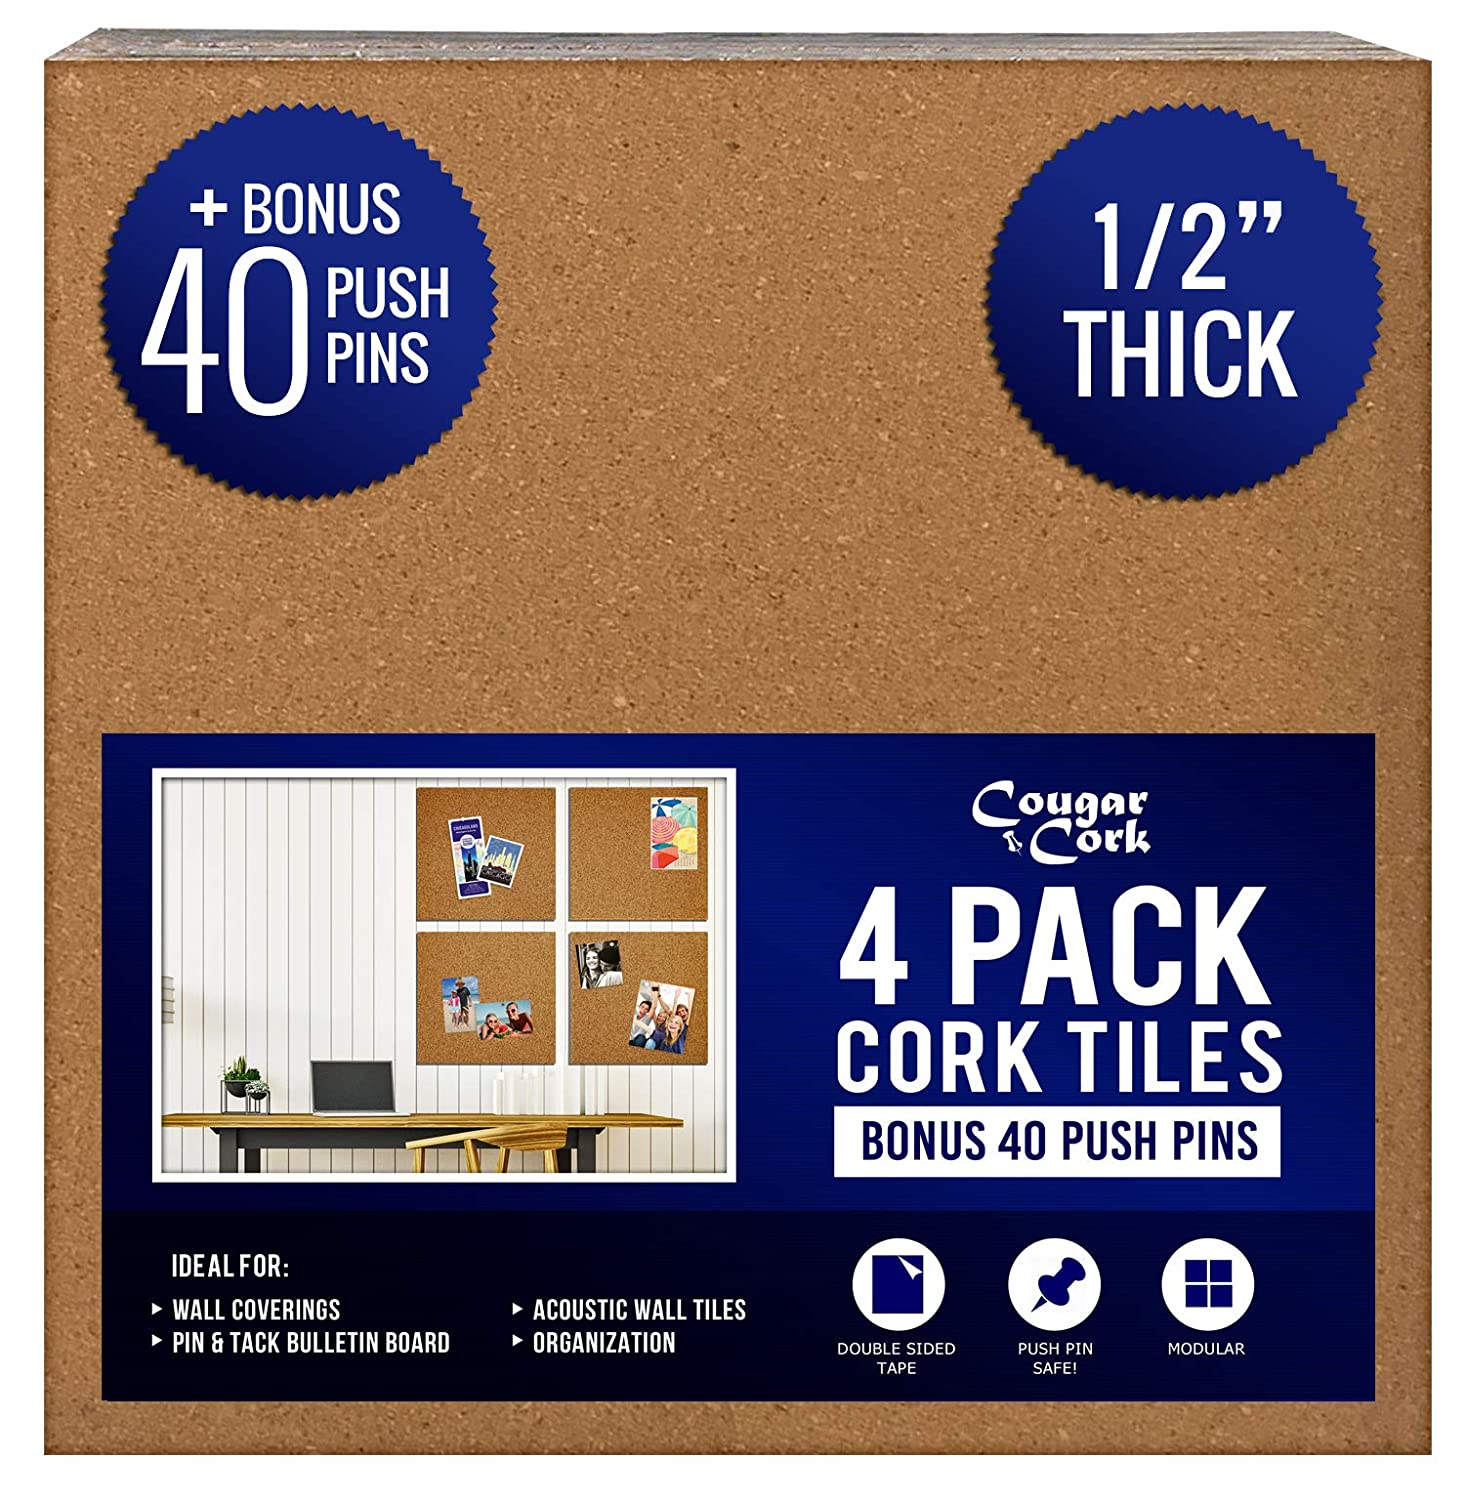 Cork Board Tiles 12x12 by Cougar Cork - 1/2 Thick - 40 Bonus Push Pins - Extra Strength Self Adhesive Backing - 4 Pack Cork Tiles - Bulletin Board - Mini Wall